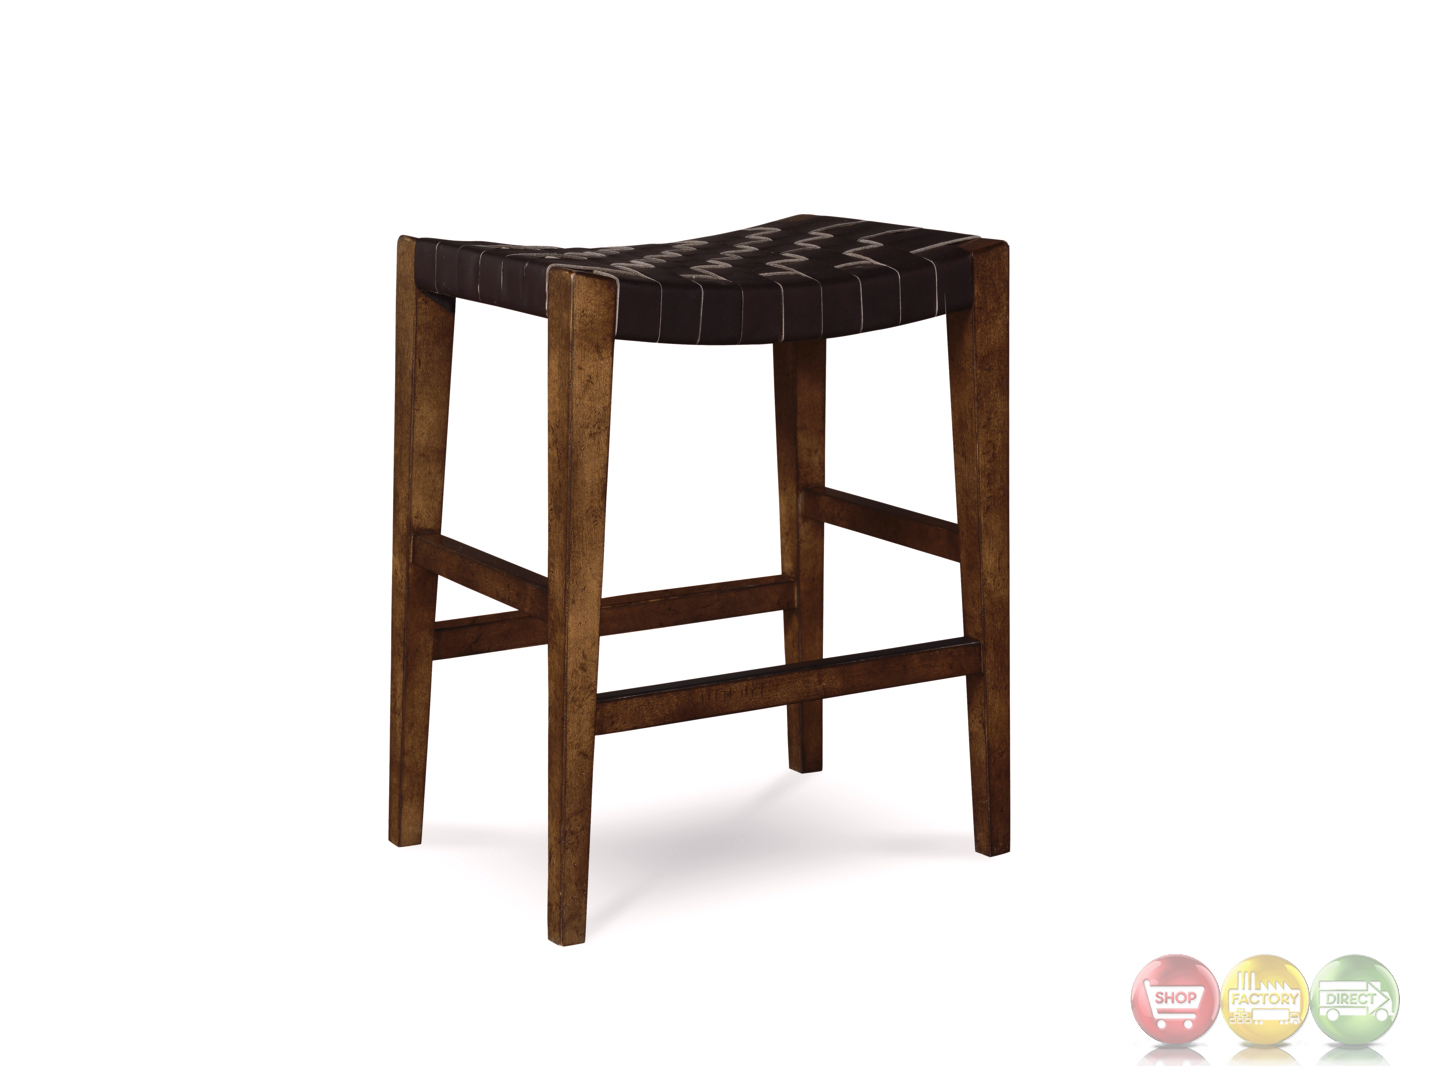 Liberty Dining Room Furniture Echo Park Woven Black Leather 24 Quot Birch Counter Height Stool